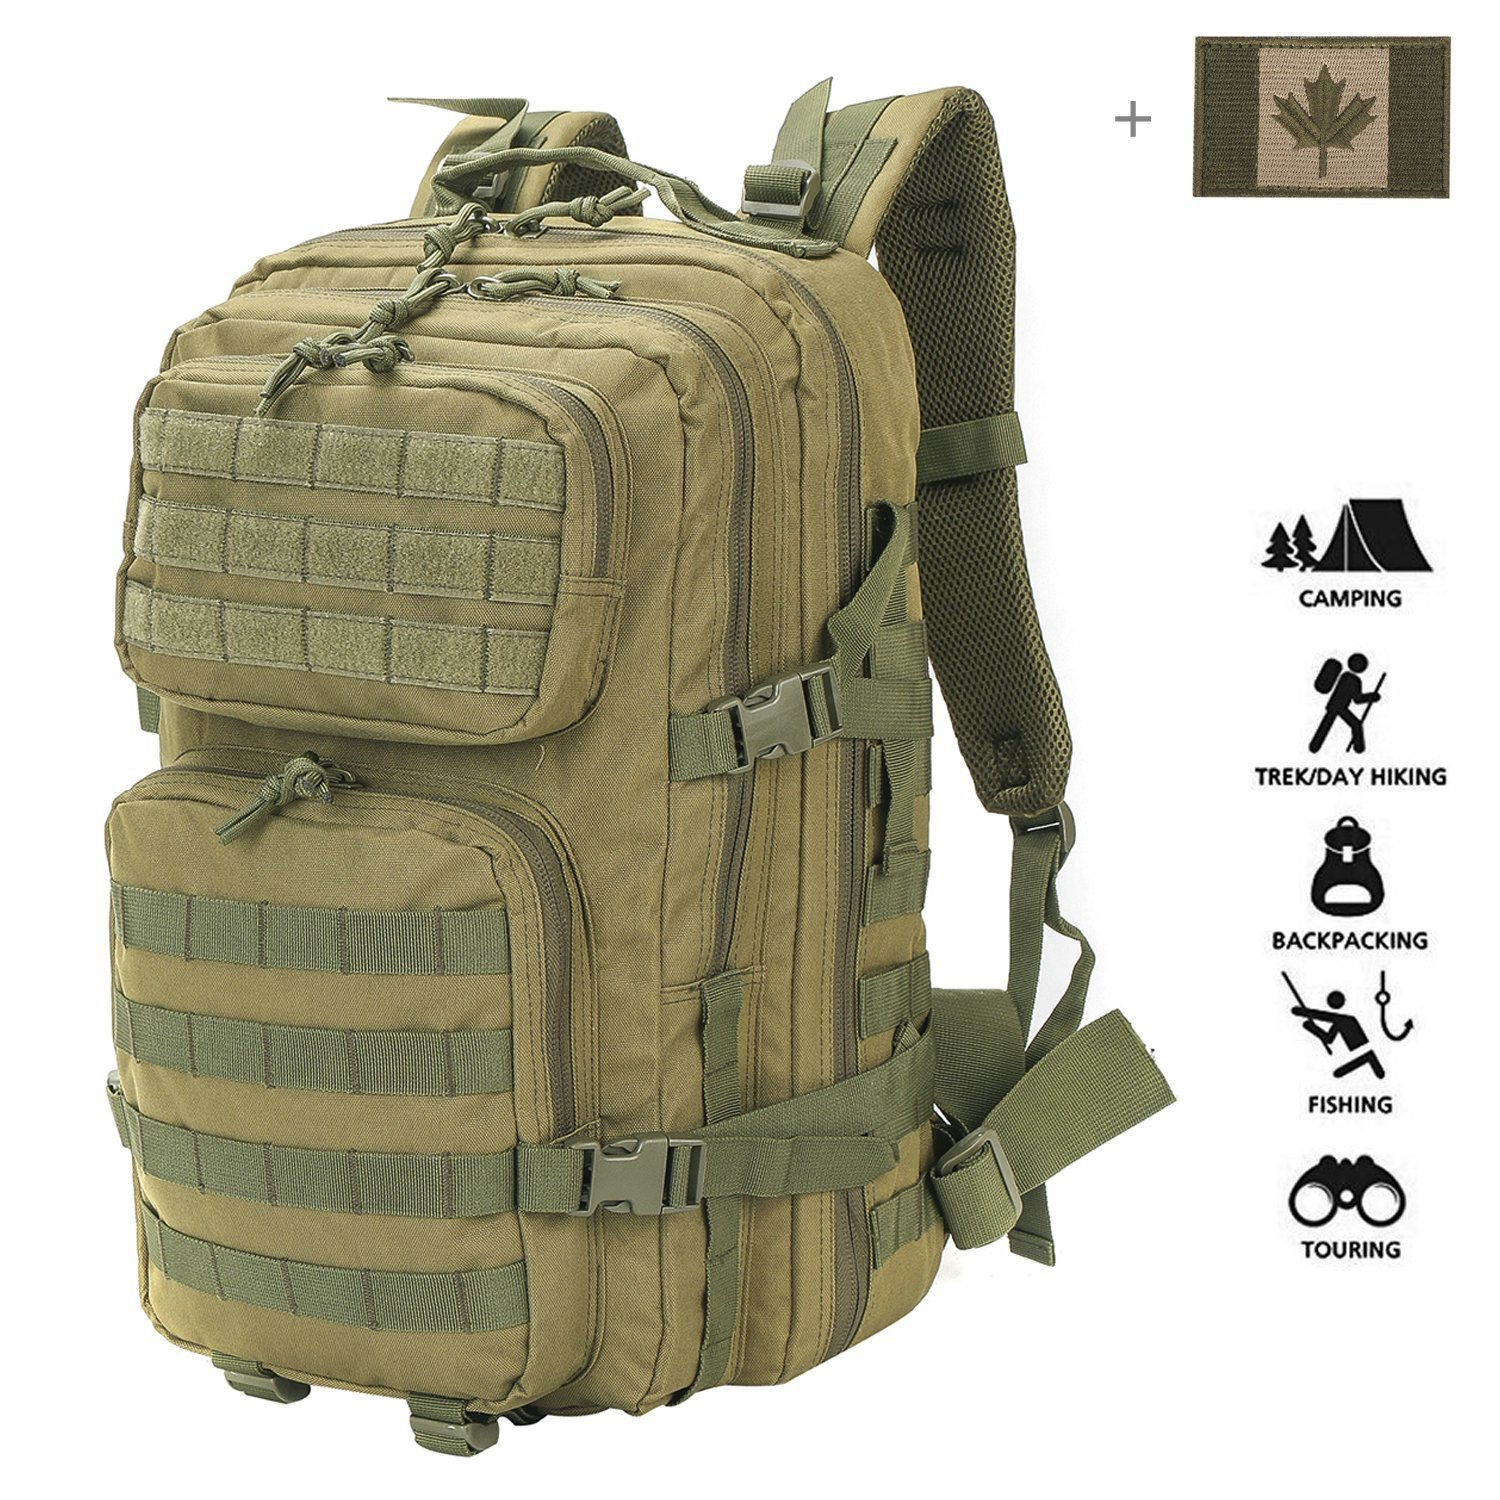 cce80d6400 Coolton Military Tactical Backpack Large 3 Day Assault Pack Army Molle Bug  Out Bag Backpacks Hunting Rucksacks 40L with Flag Patch